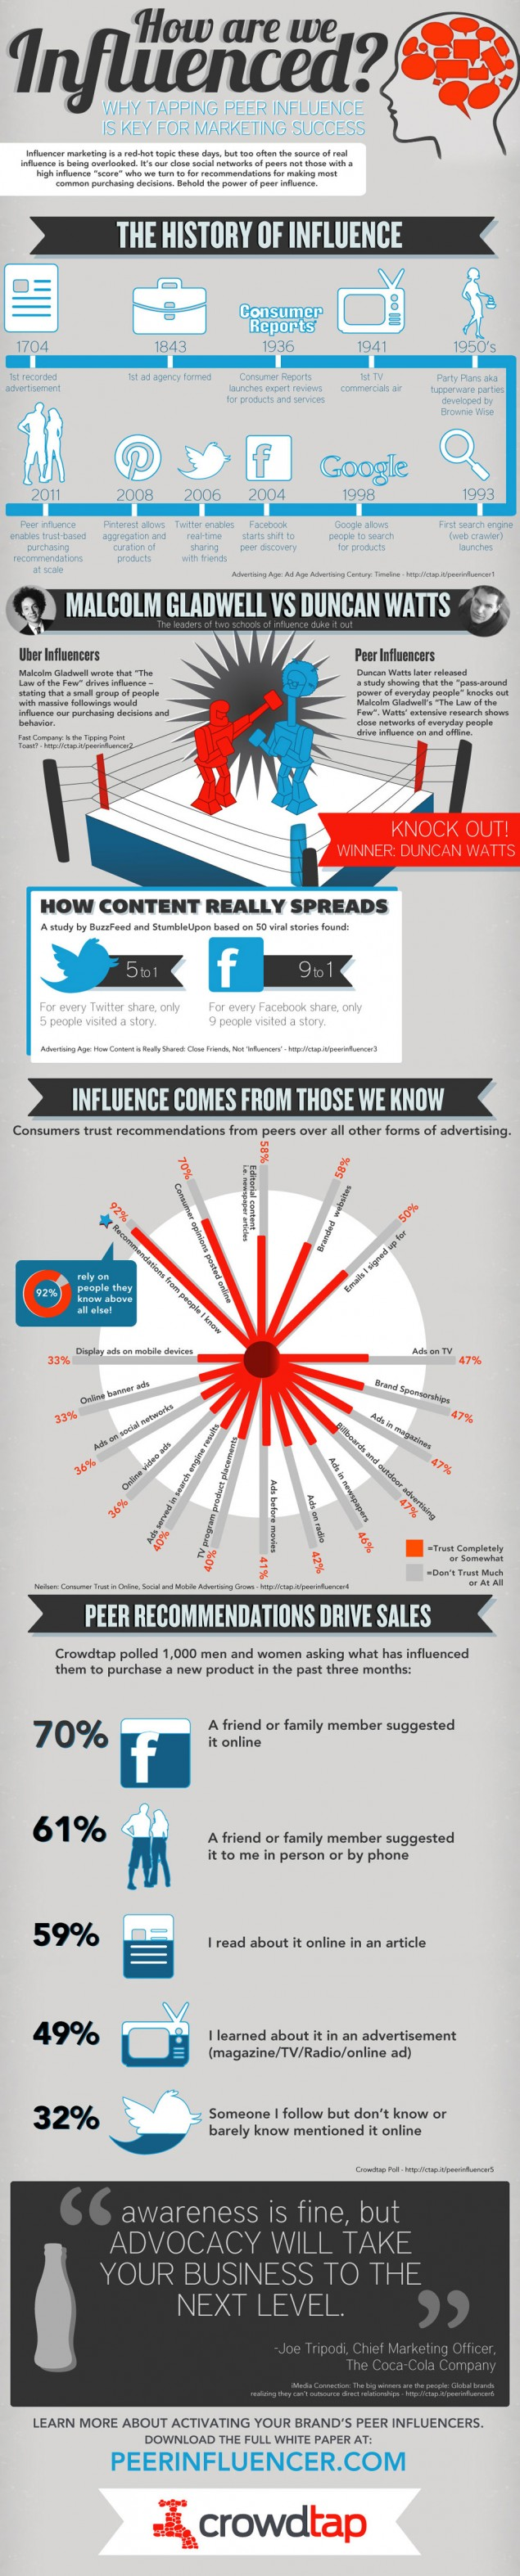 Image provided by: {link:http://mashable.com/2012/06/13/influence-marketing-infographic/}mashable{/link}